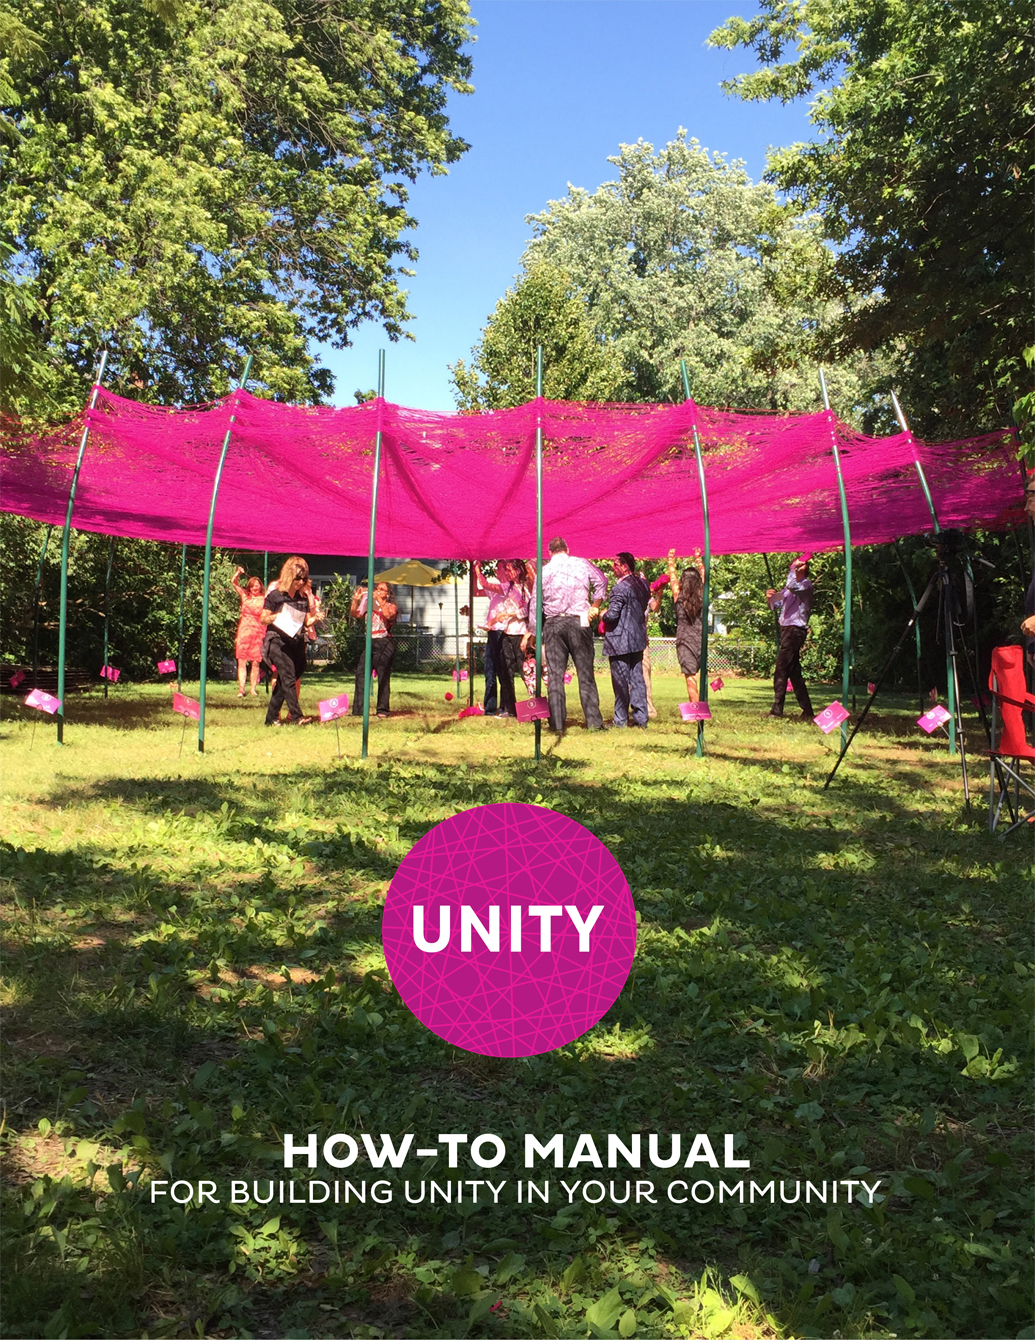 UNITYManual-1 copy.jpg